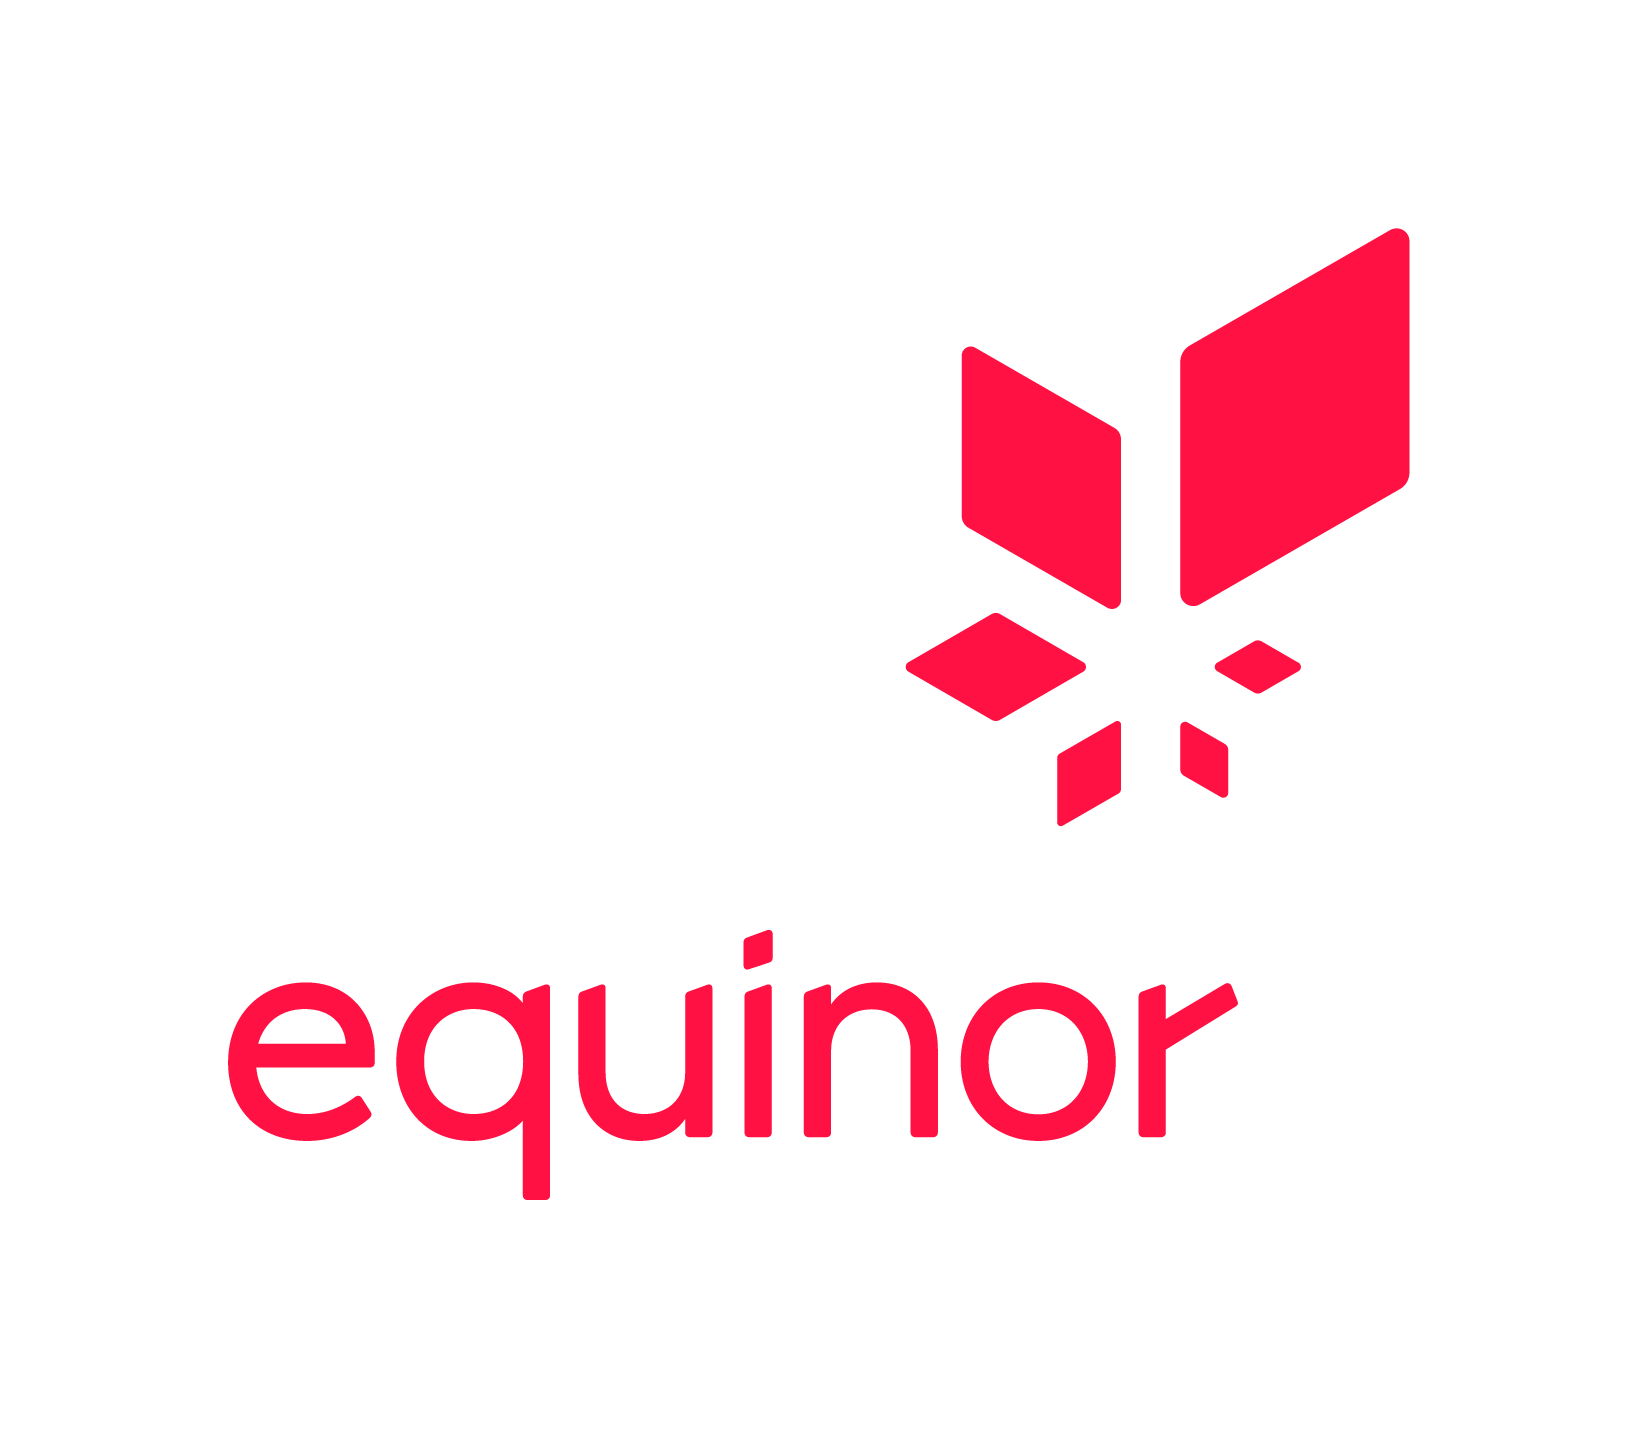 Equinor_PRIMARY_logo_RGB_RED